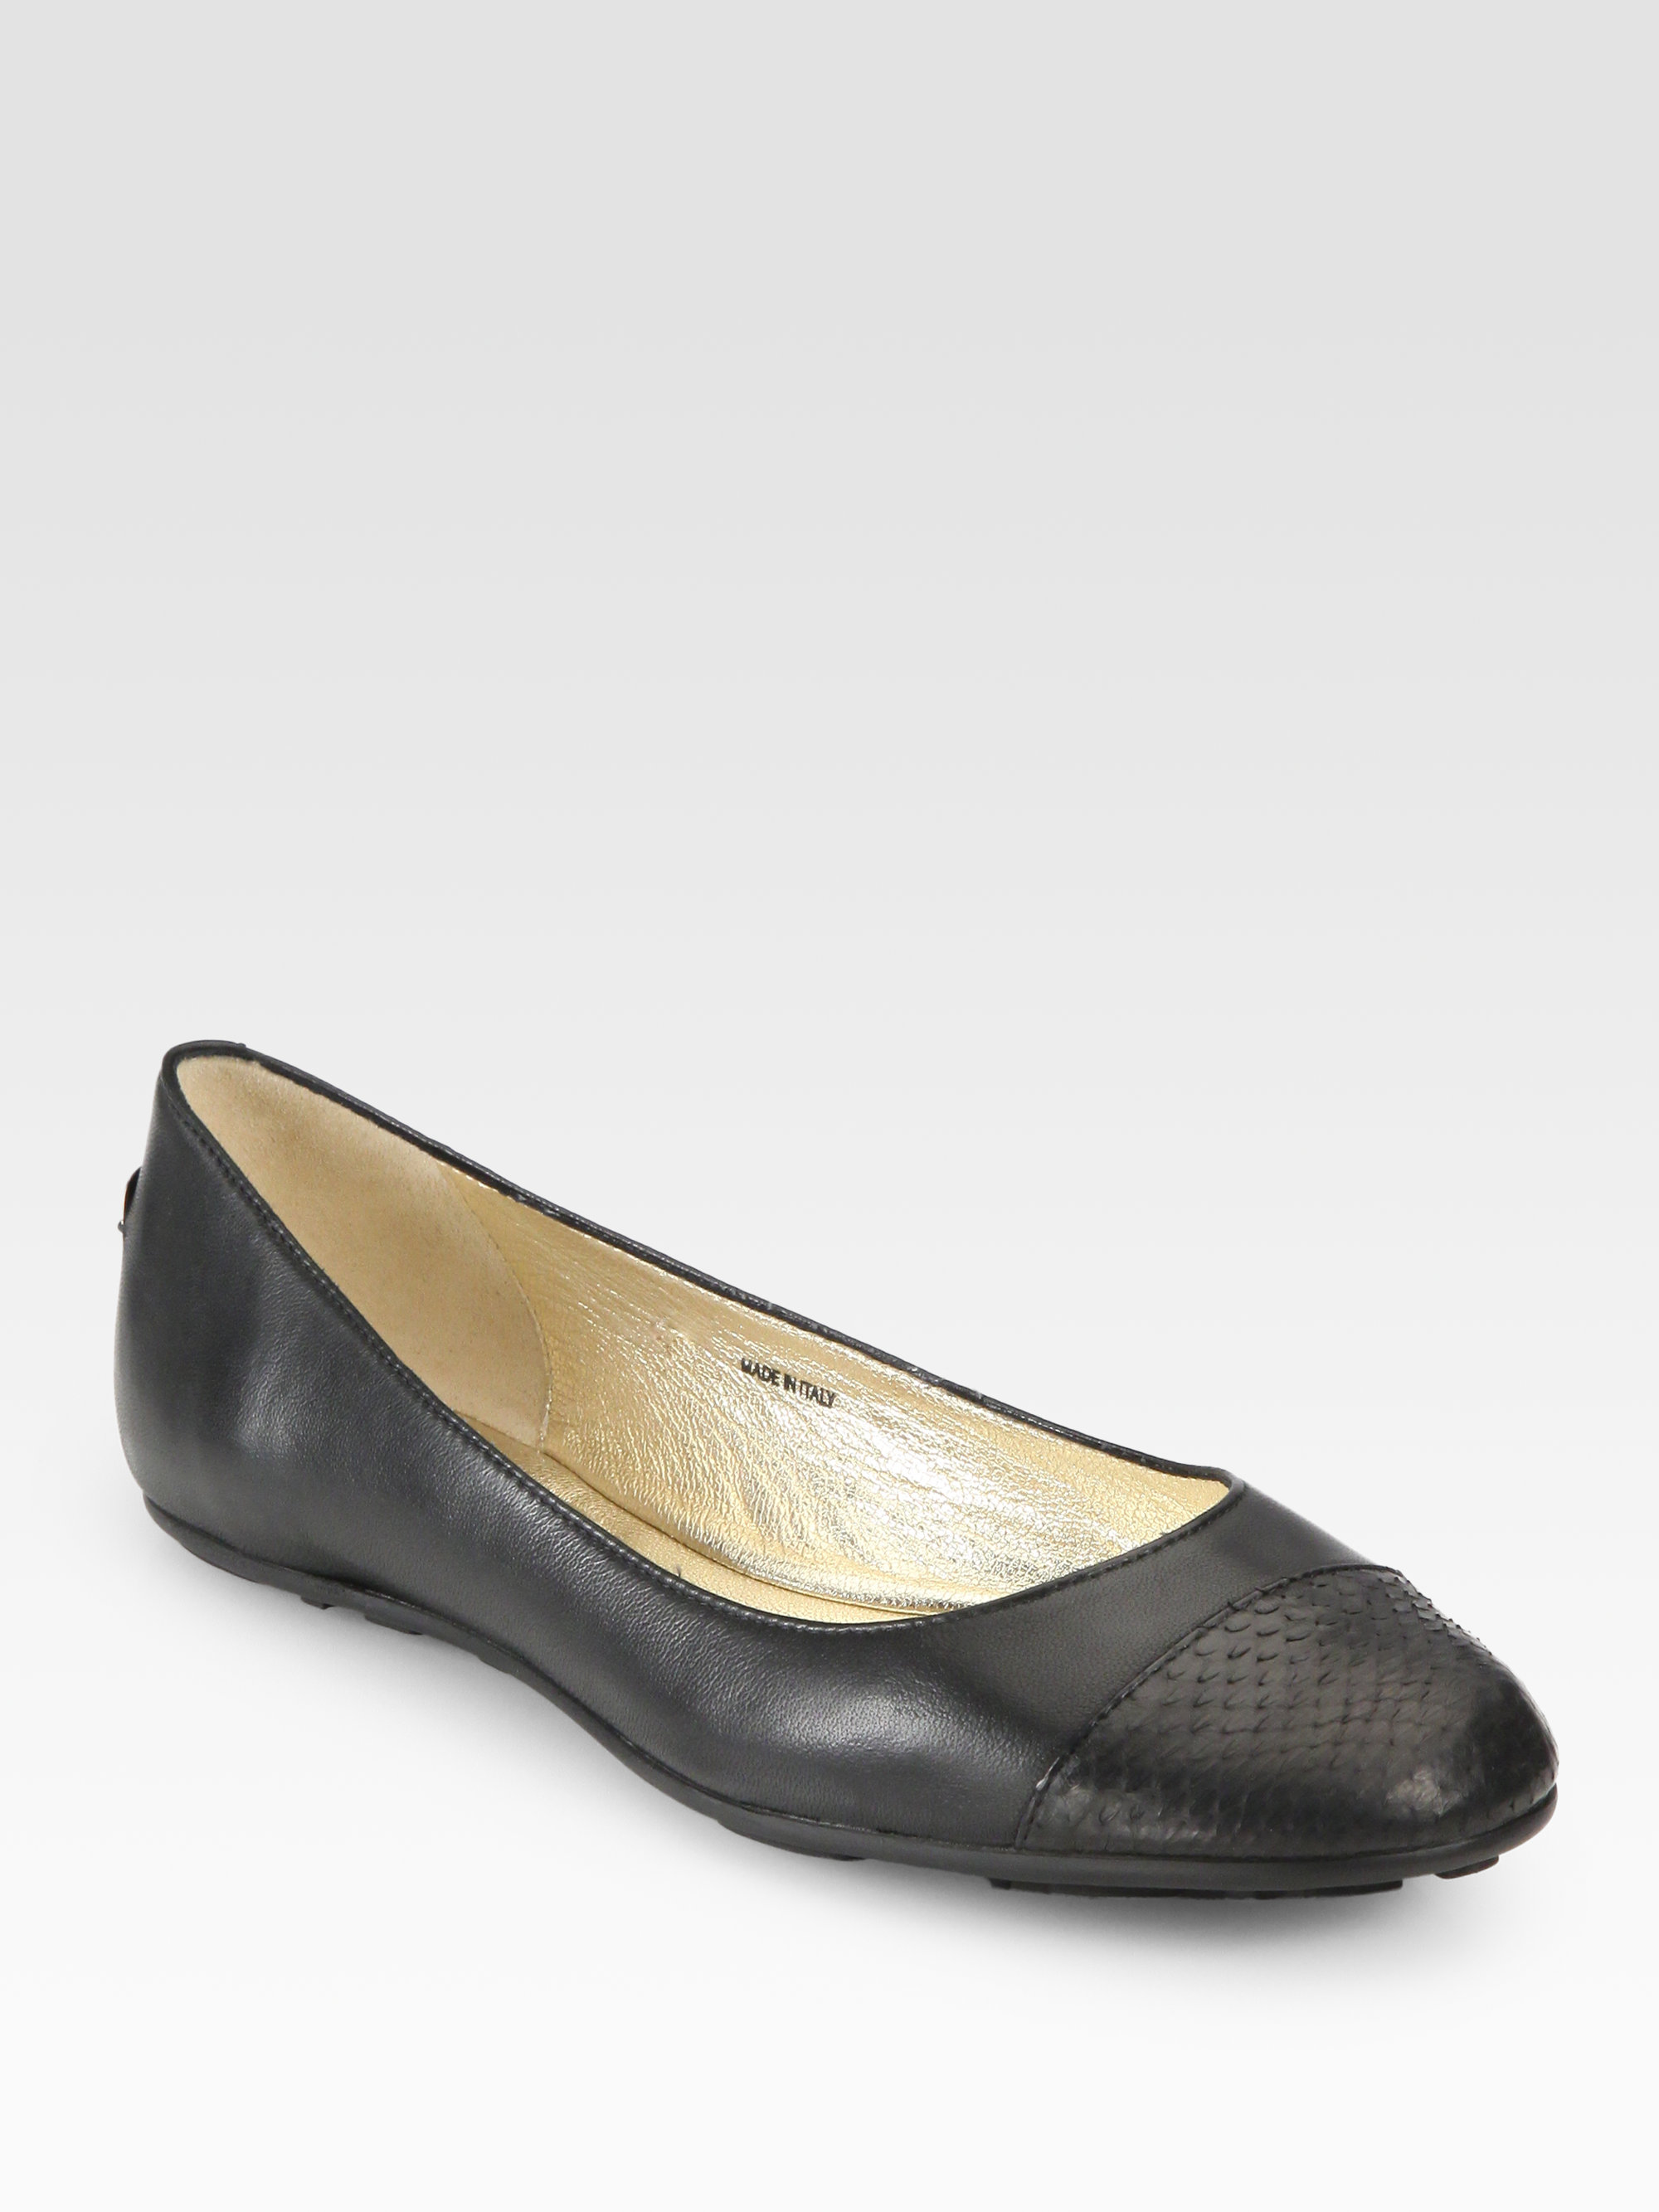 79fb956c167 ... italy lyst jimmy choo whirl snakeskin leather ballet flats in black  10d74 364a0